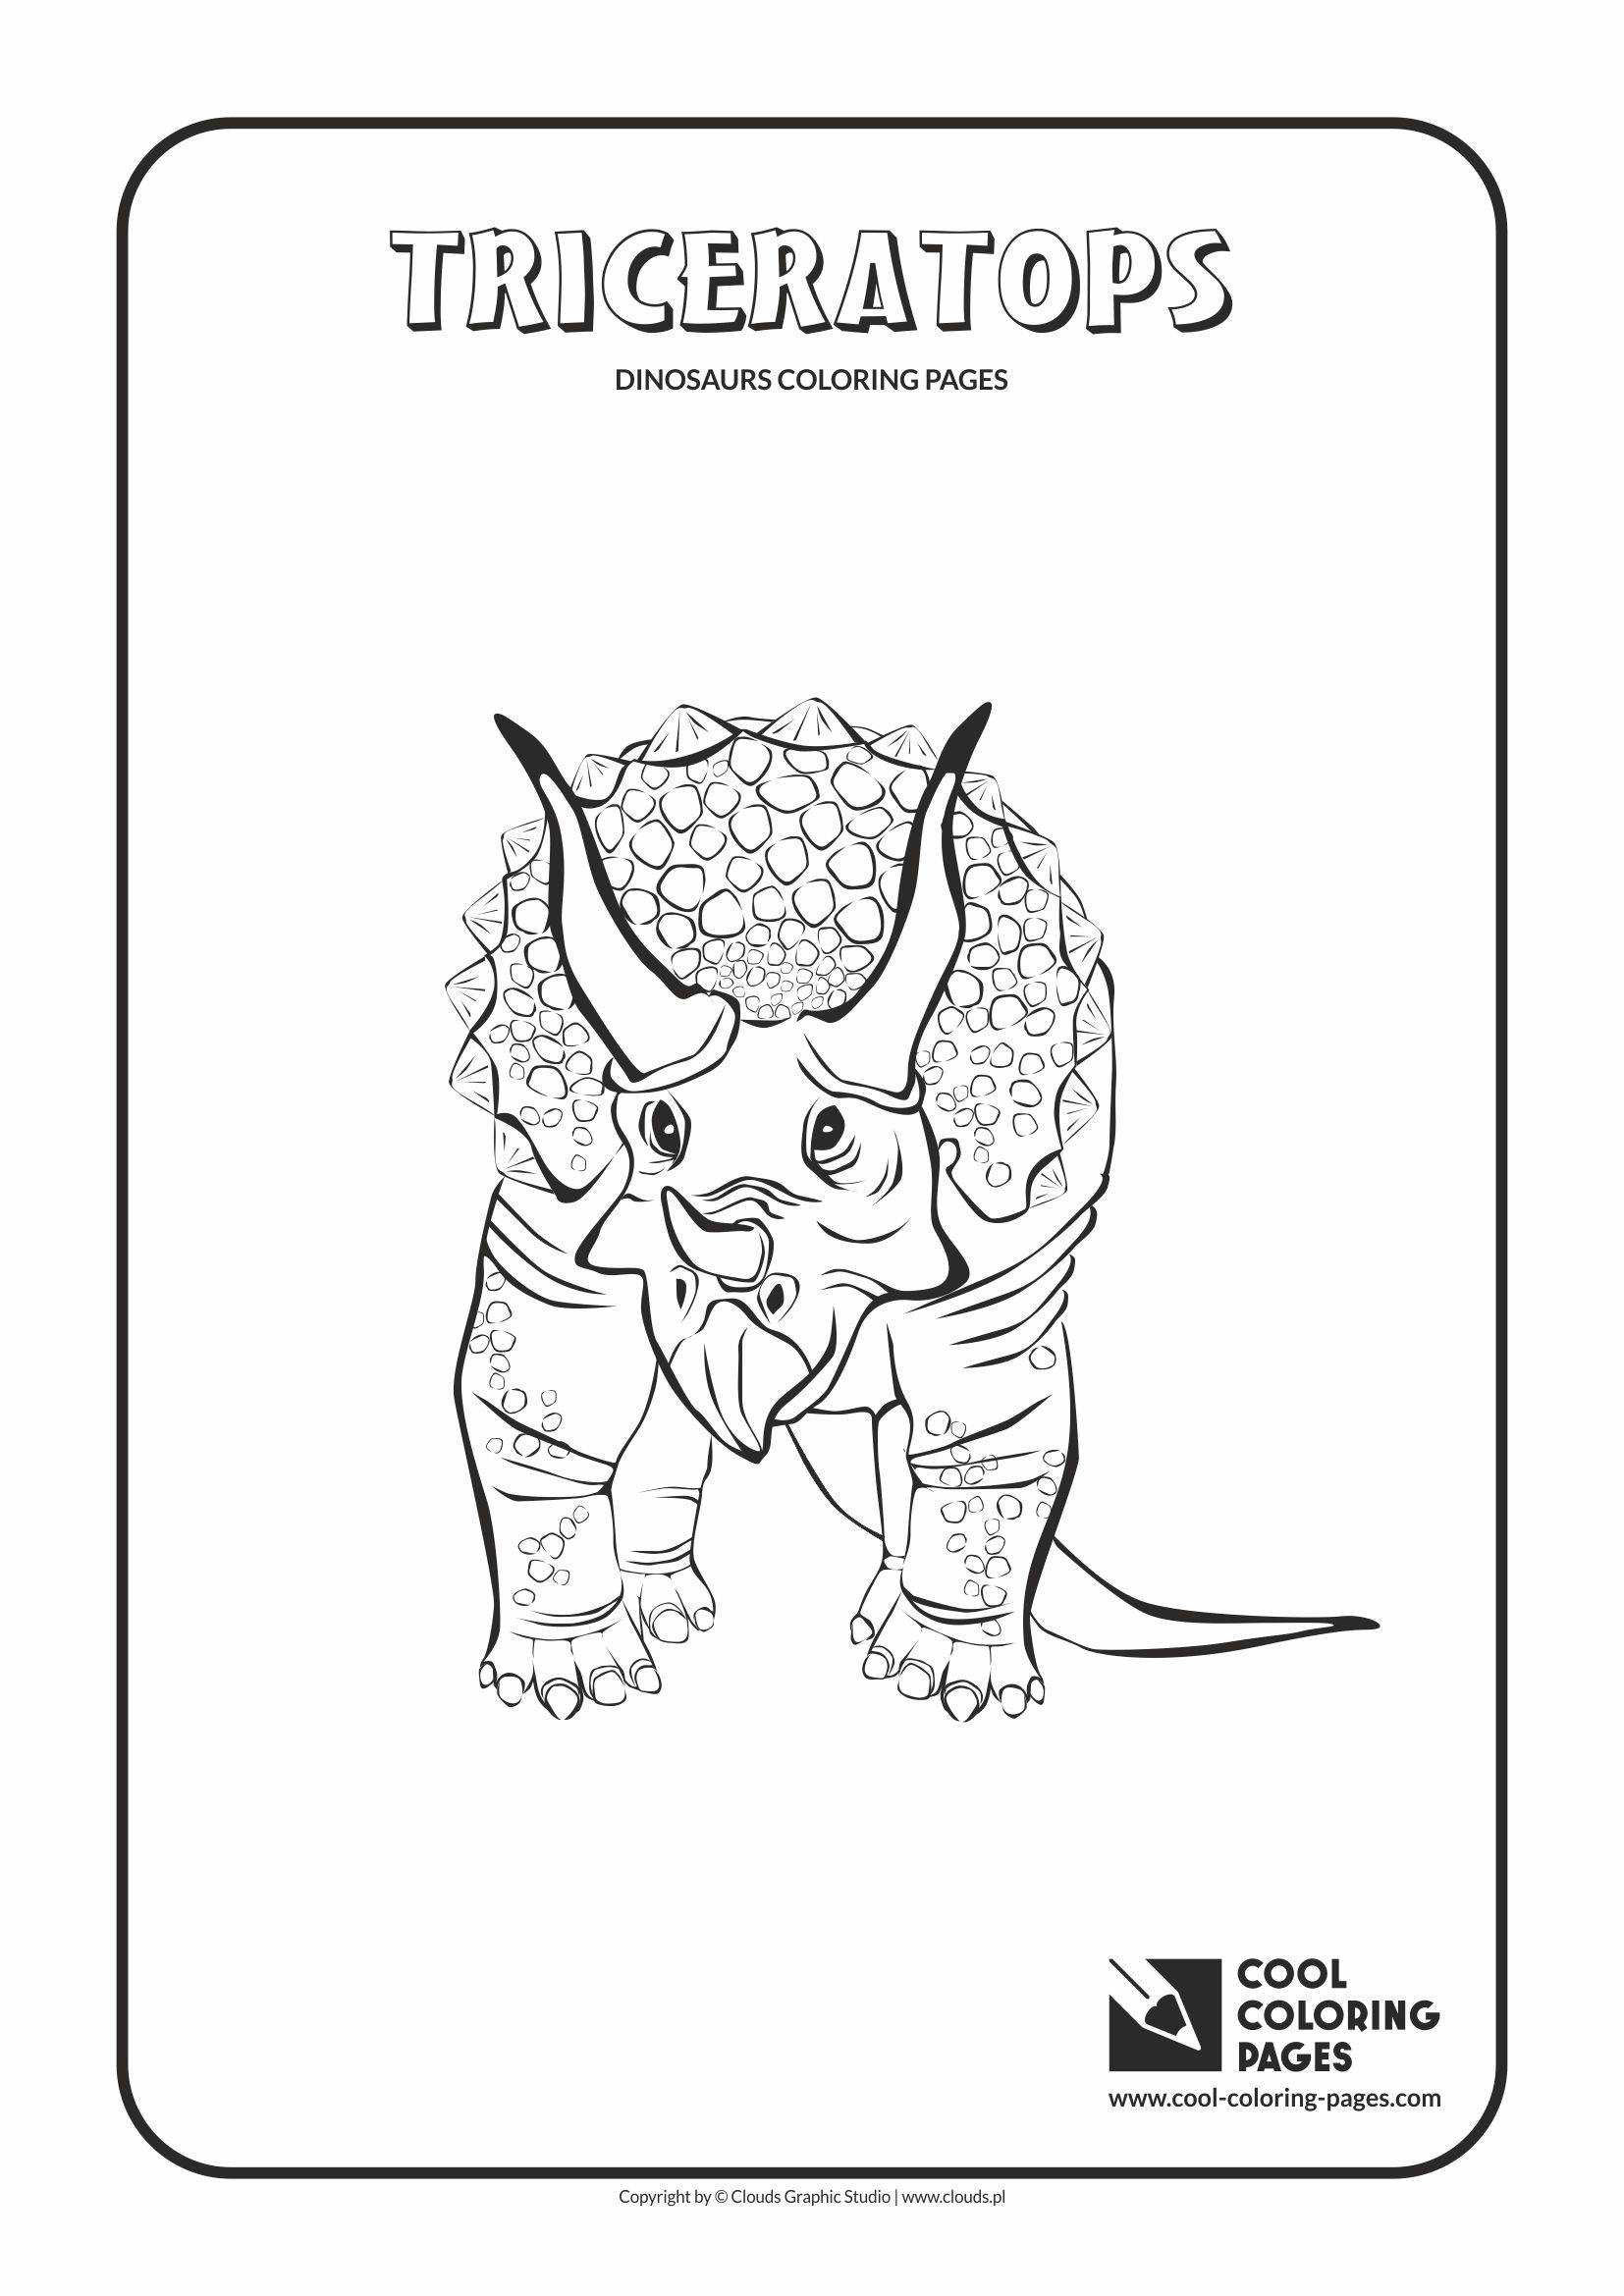 Cool Coloring Pages Dinosaurs Coloring Pages Cool